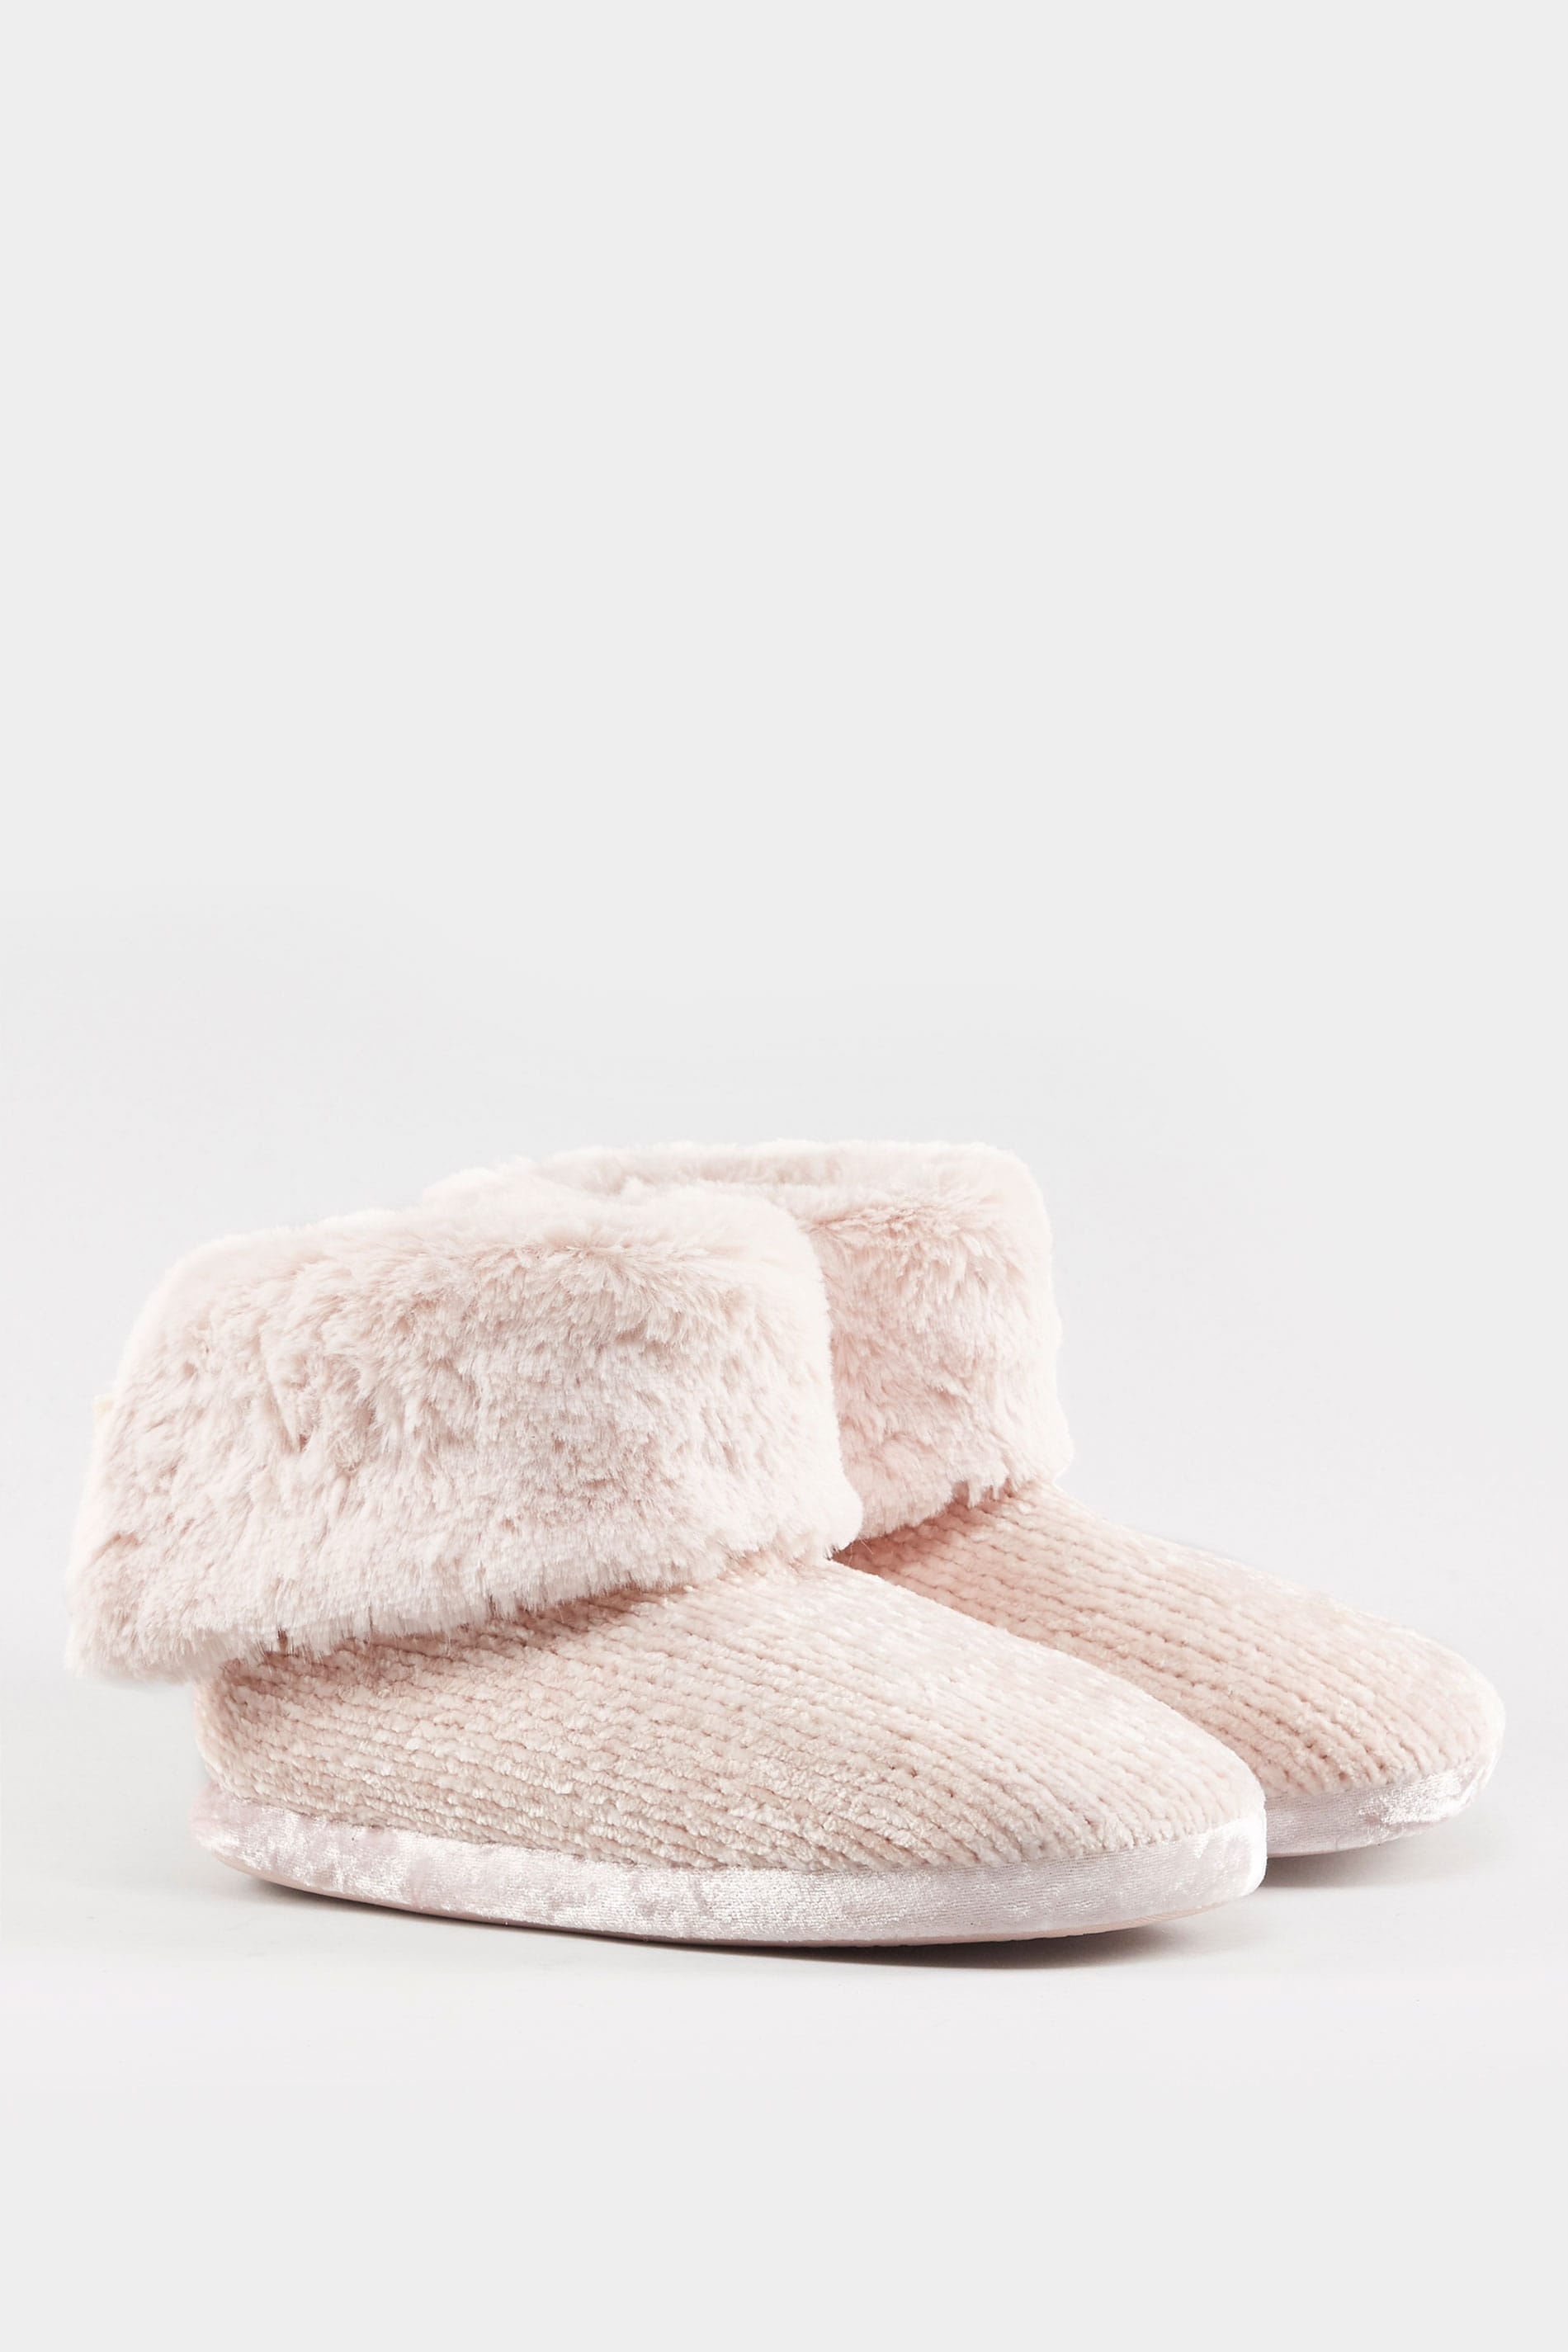 7f8c24e7e759f Pink Chenille Knit Slipper Boot, Wide Fitting Sizes 5 to 10